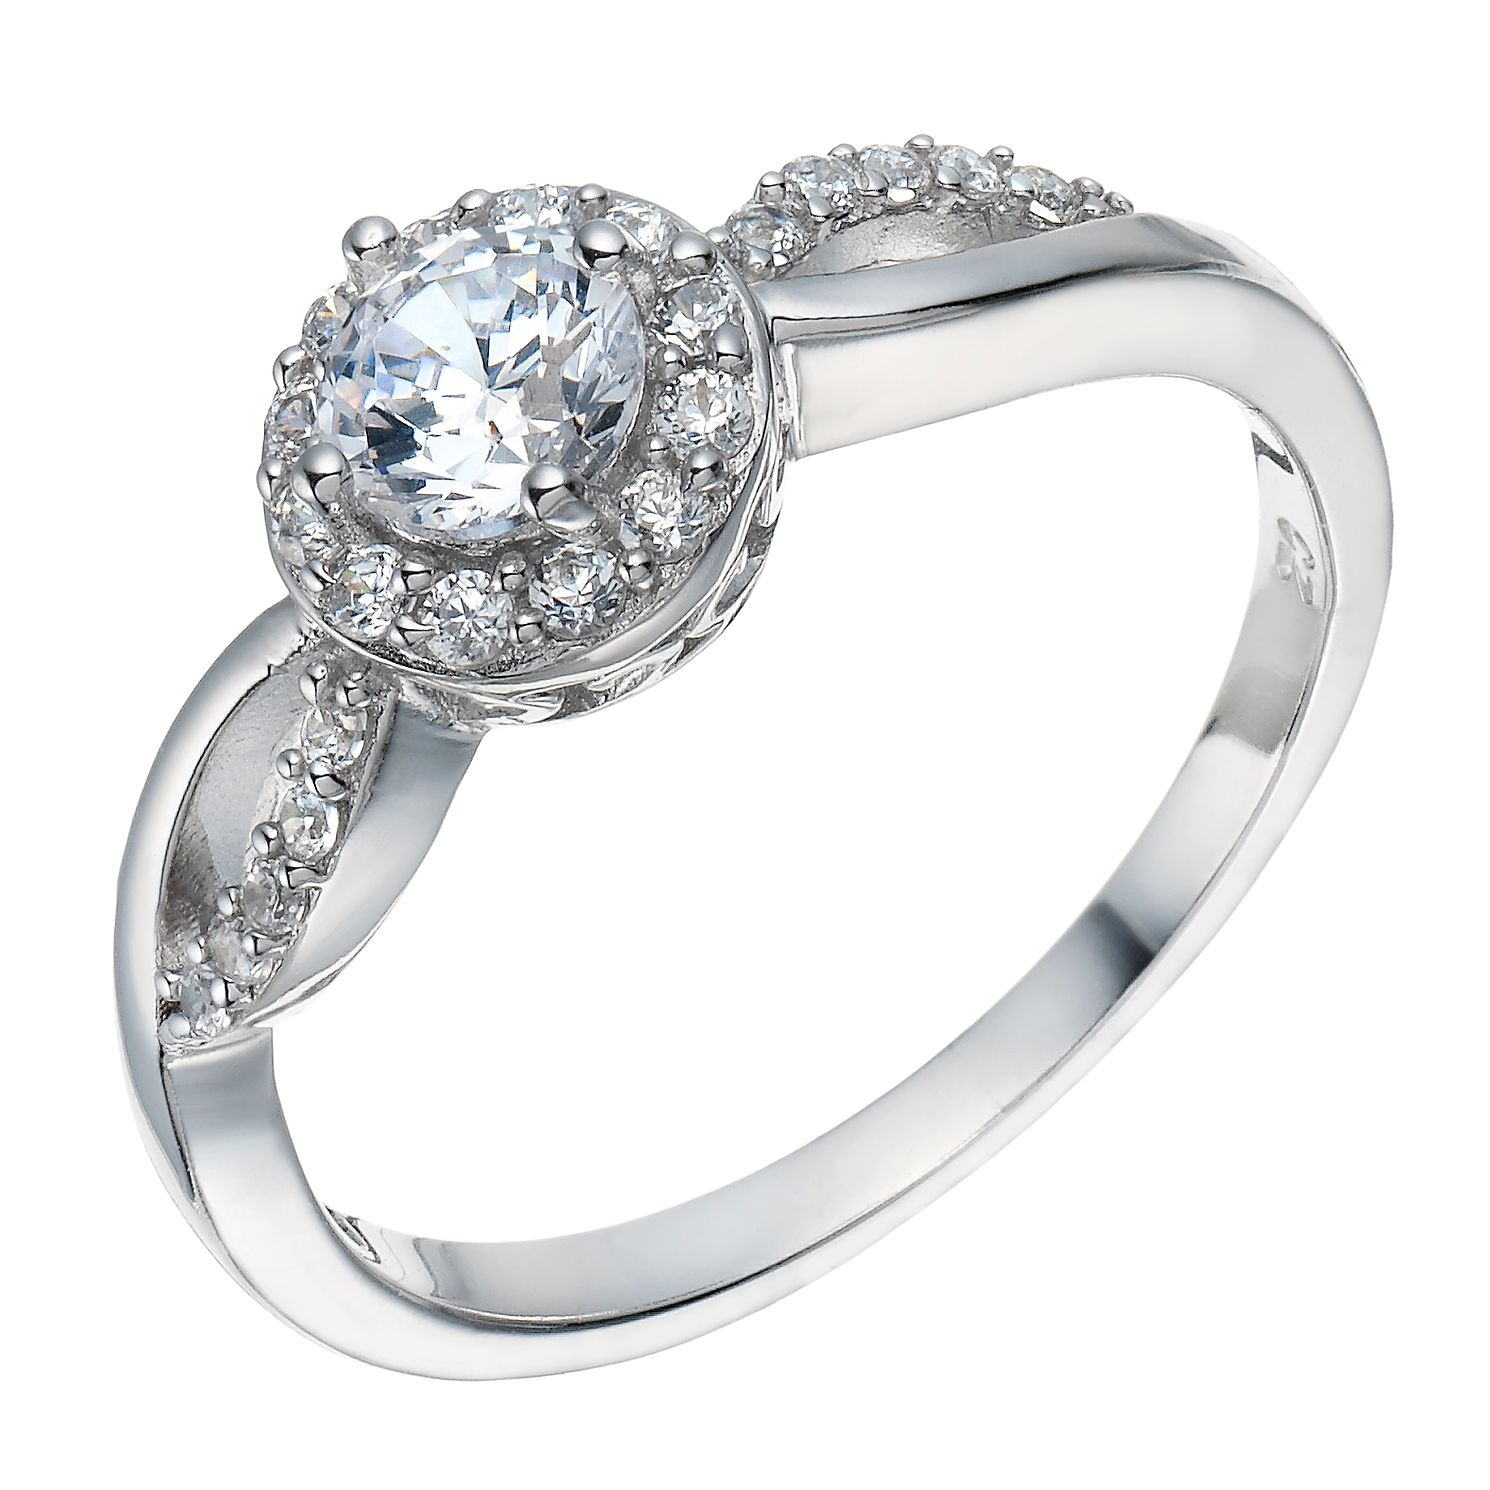 Sterling Silver Cubic Zirconia Solitaire Halo Ring Size L - Product number 1782649